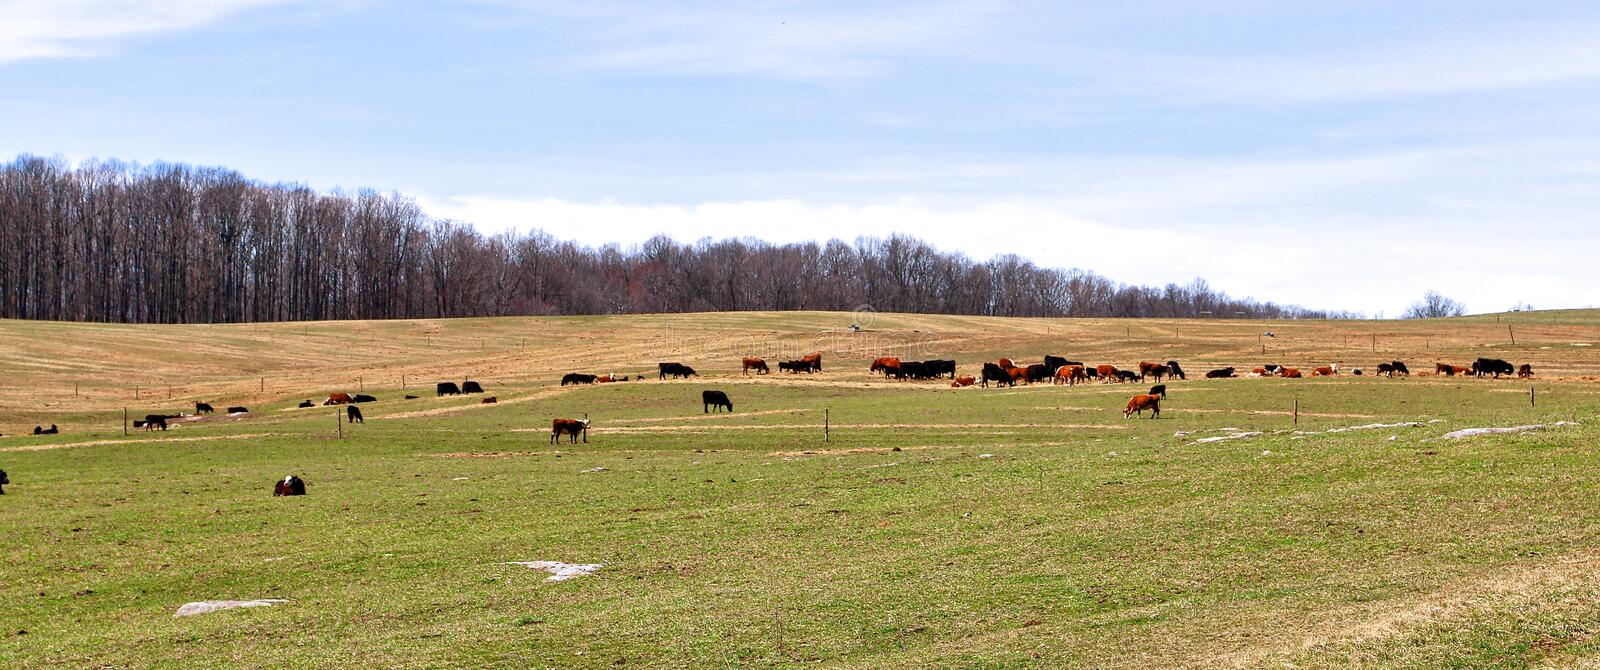 Vaches Graze Across The Landscaped Pasture images libres de droits